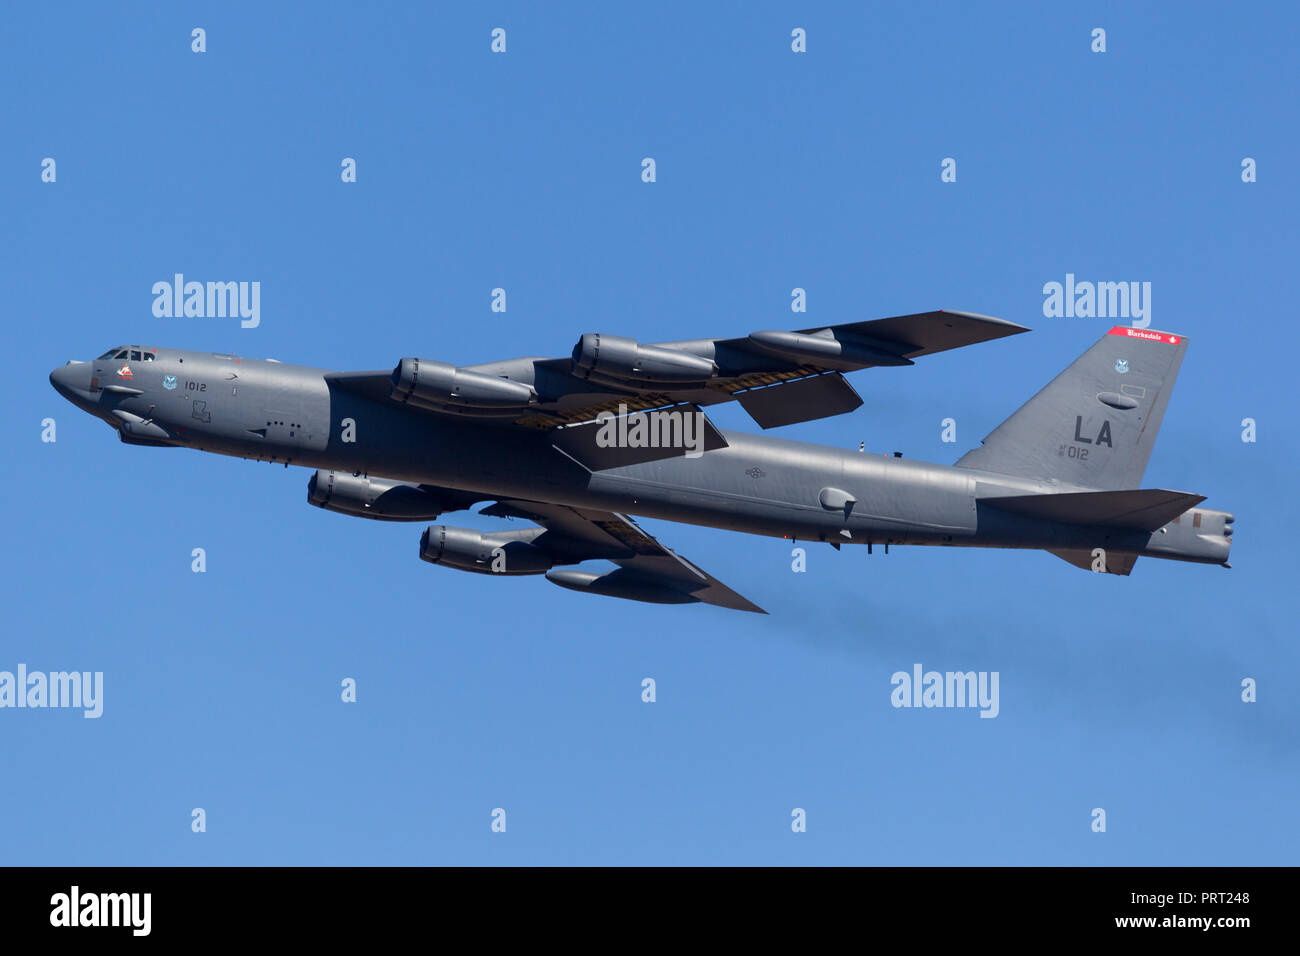 United States Air Force (USAF) Boeing B-52H Stratofortress strategic bomber aircraft (61-0012) from Barksdale Air Force Base. - Stock Image